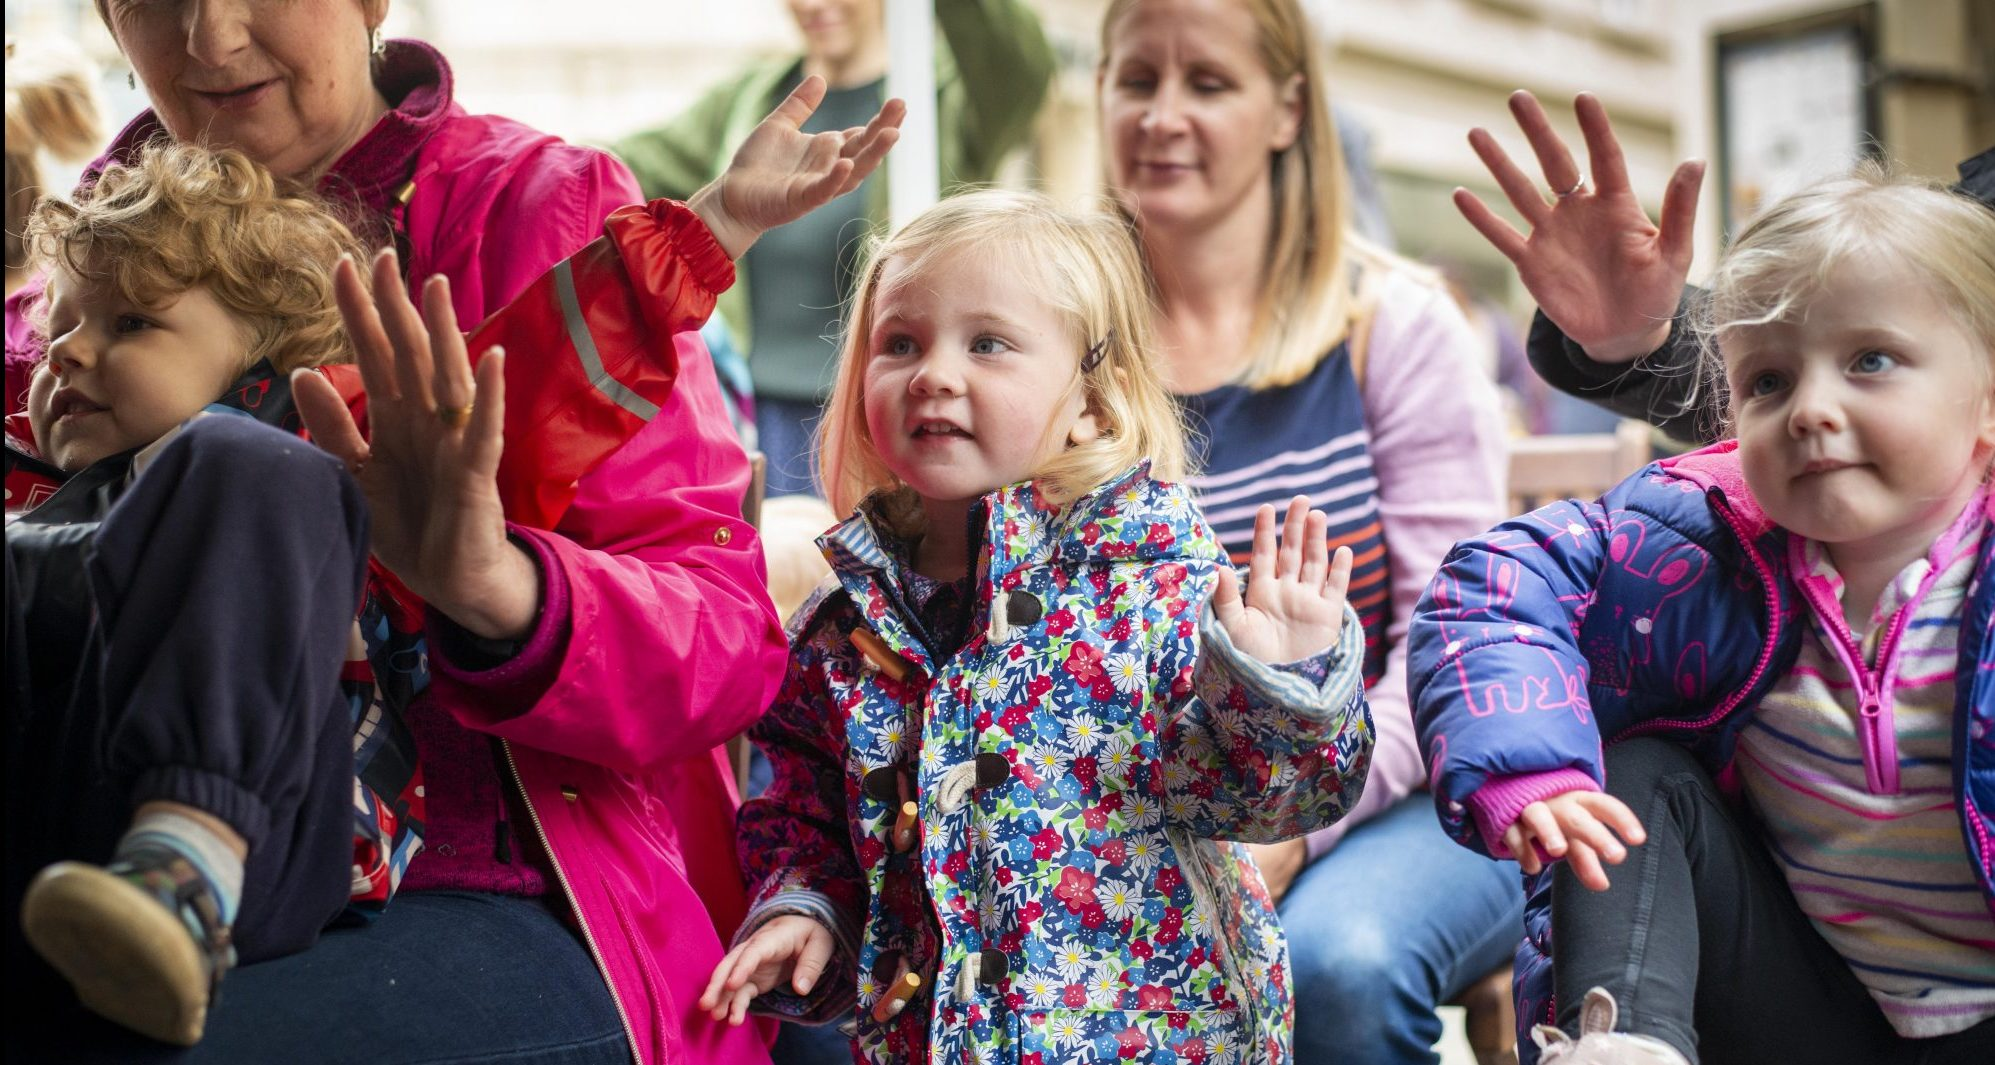 Free storytelling event for children in Surrey Quays – South